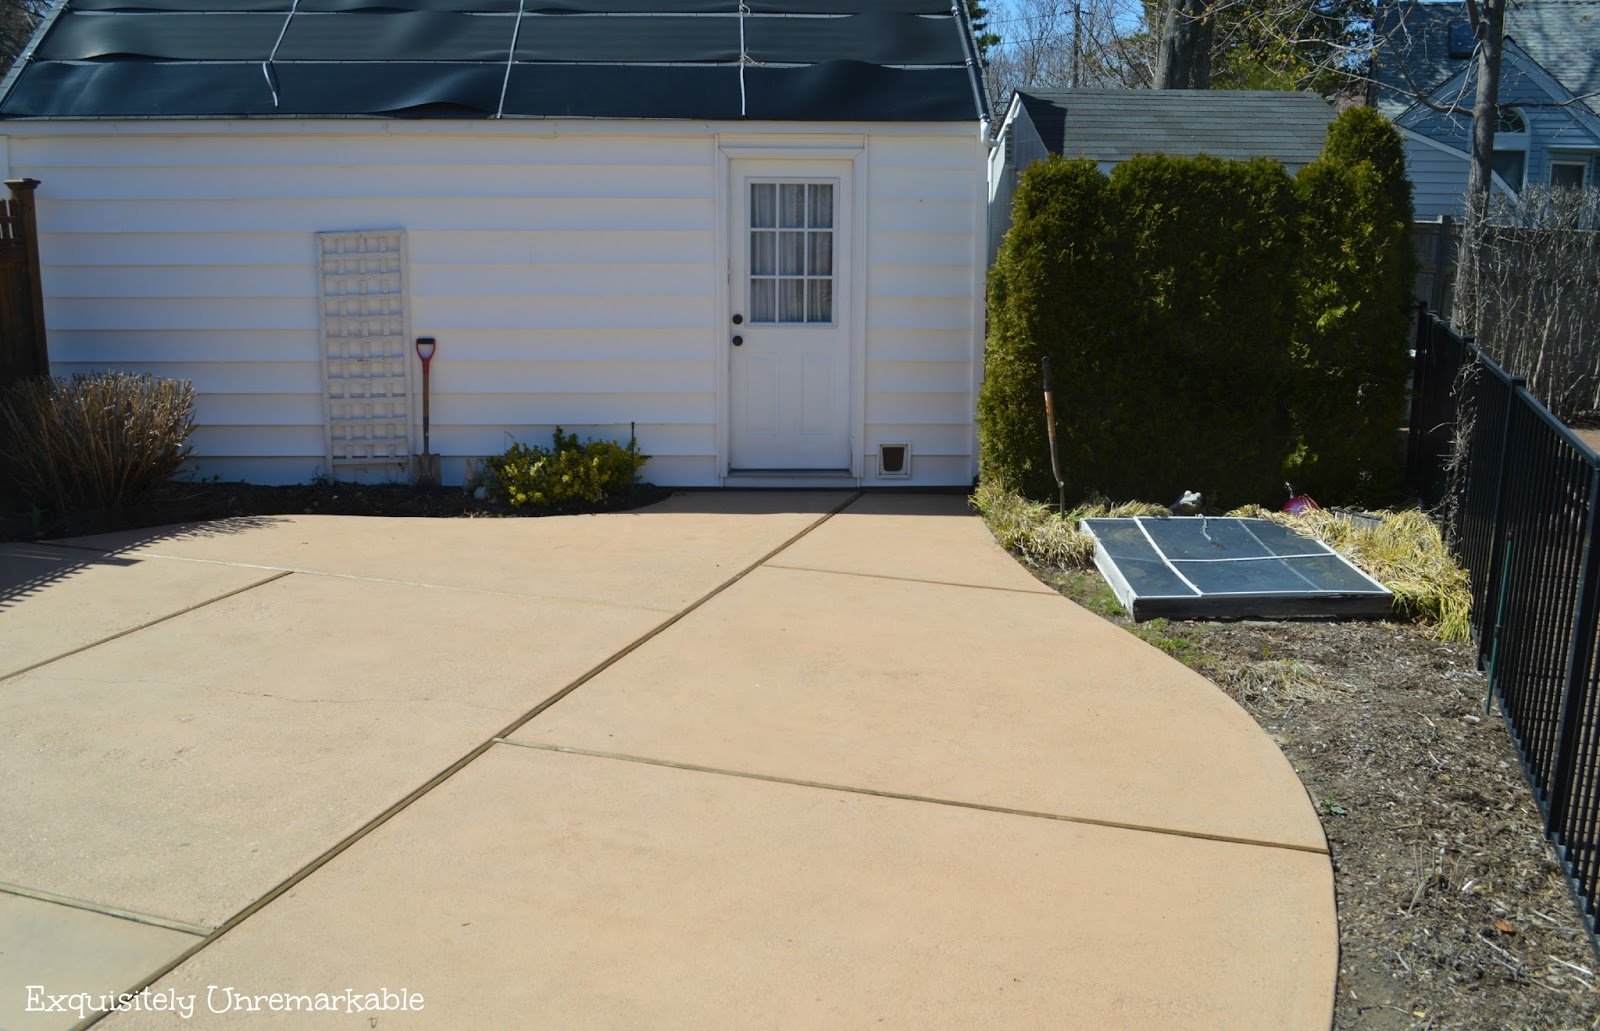 How To Stain A Concrete Patio |Exquisitely Unremarkable